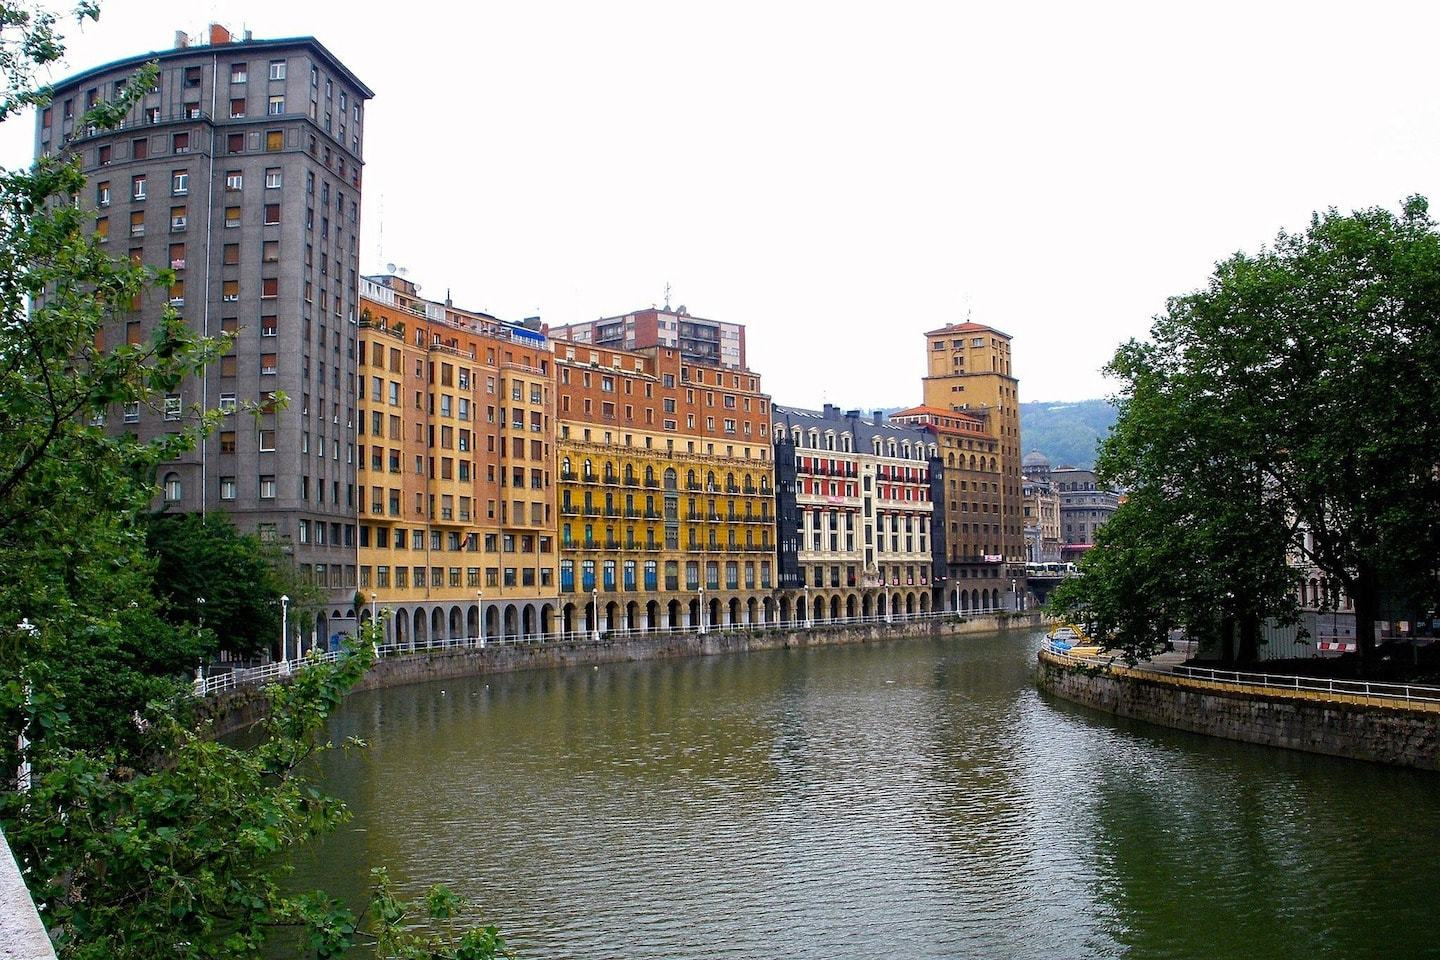 river with buildings on one side and trees on the other